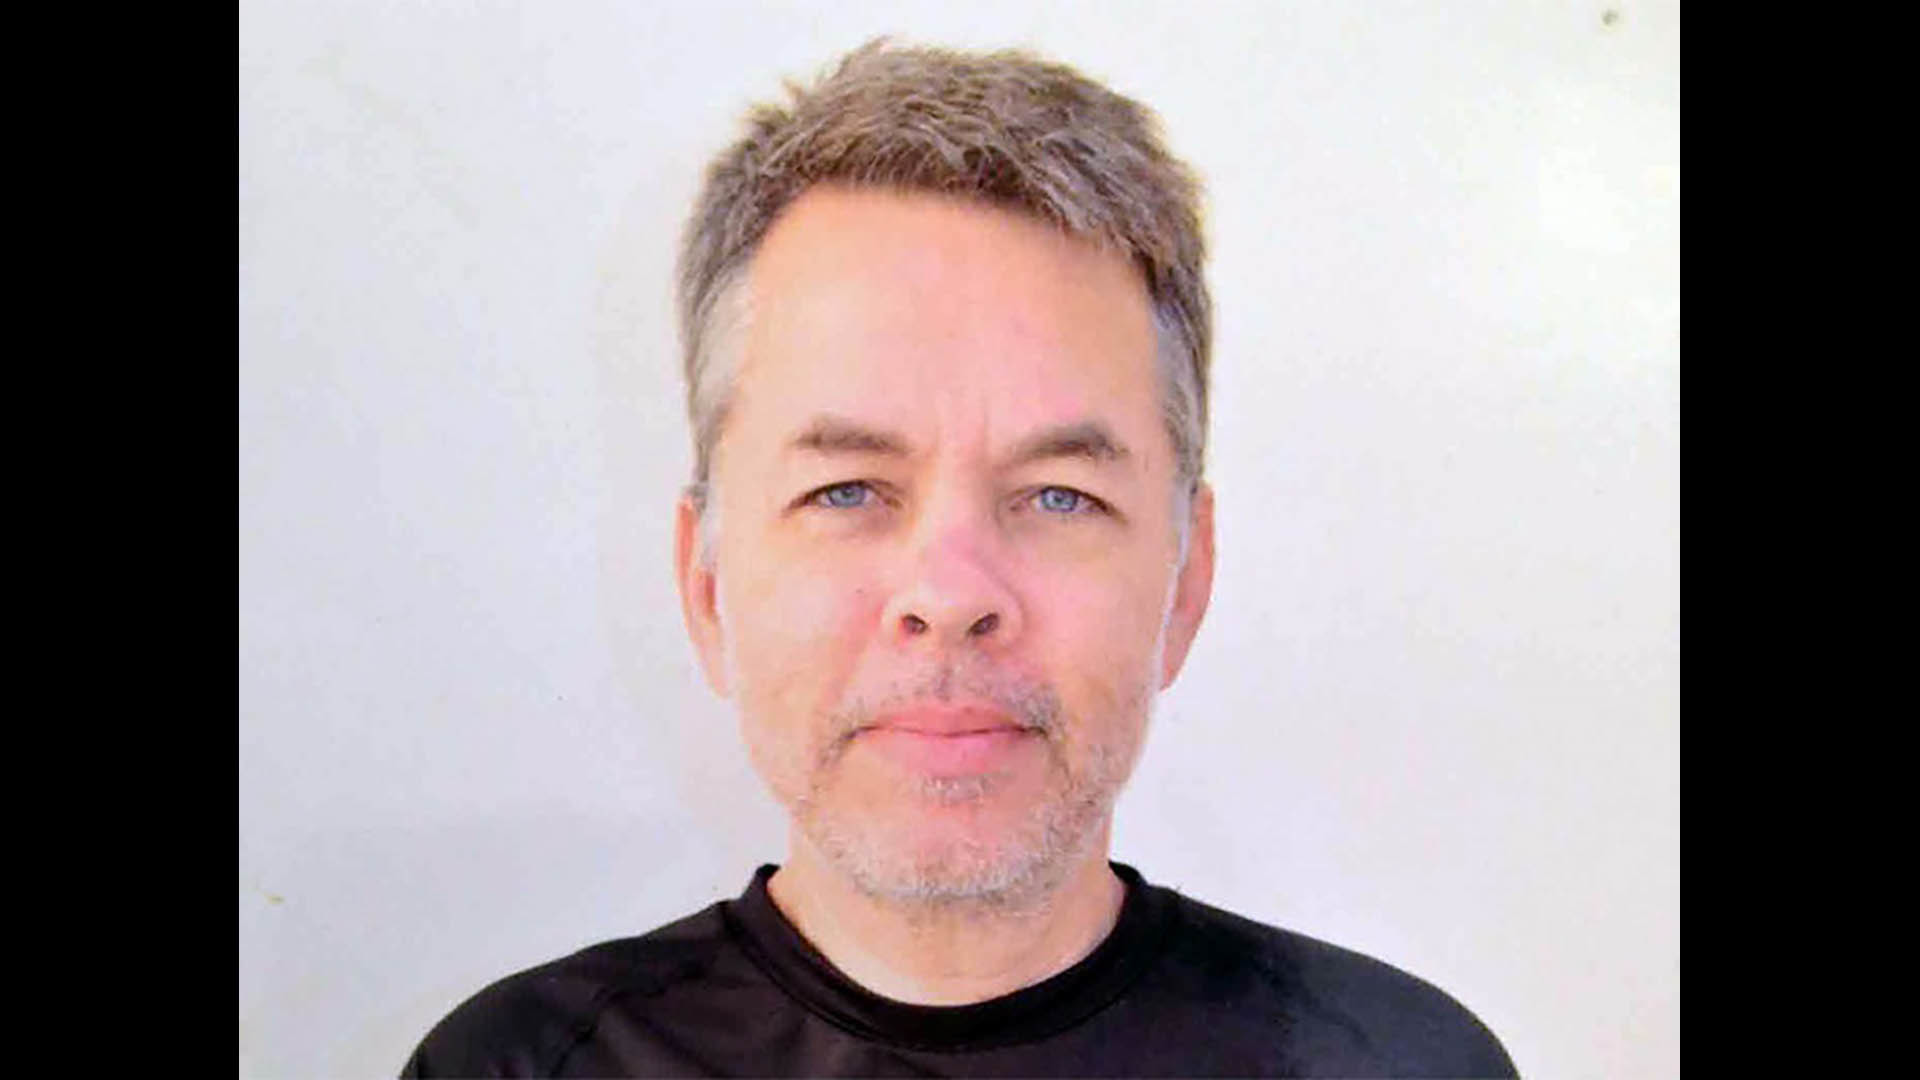 A Turkish court has ordered that Pastor Andrew Brunson be placed under house arrest and released from prison after being jailed for nearly 21 months